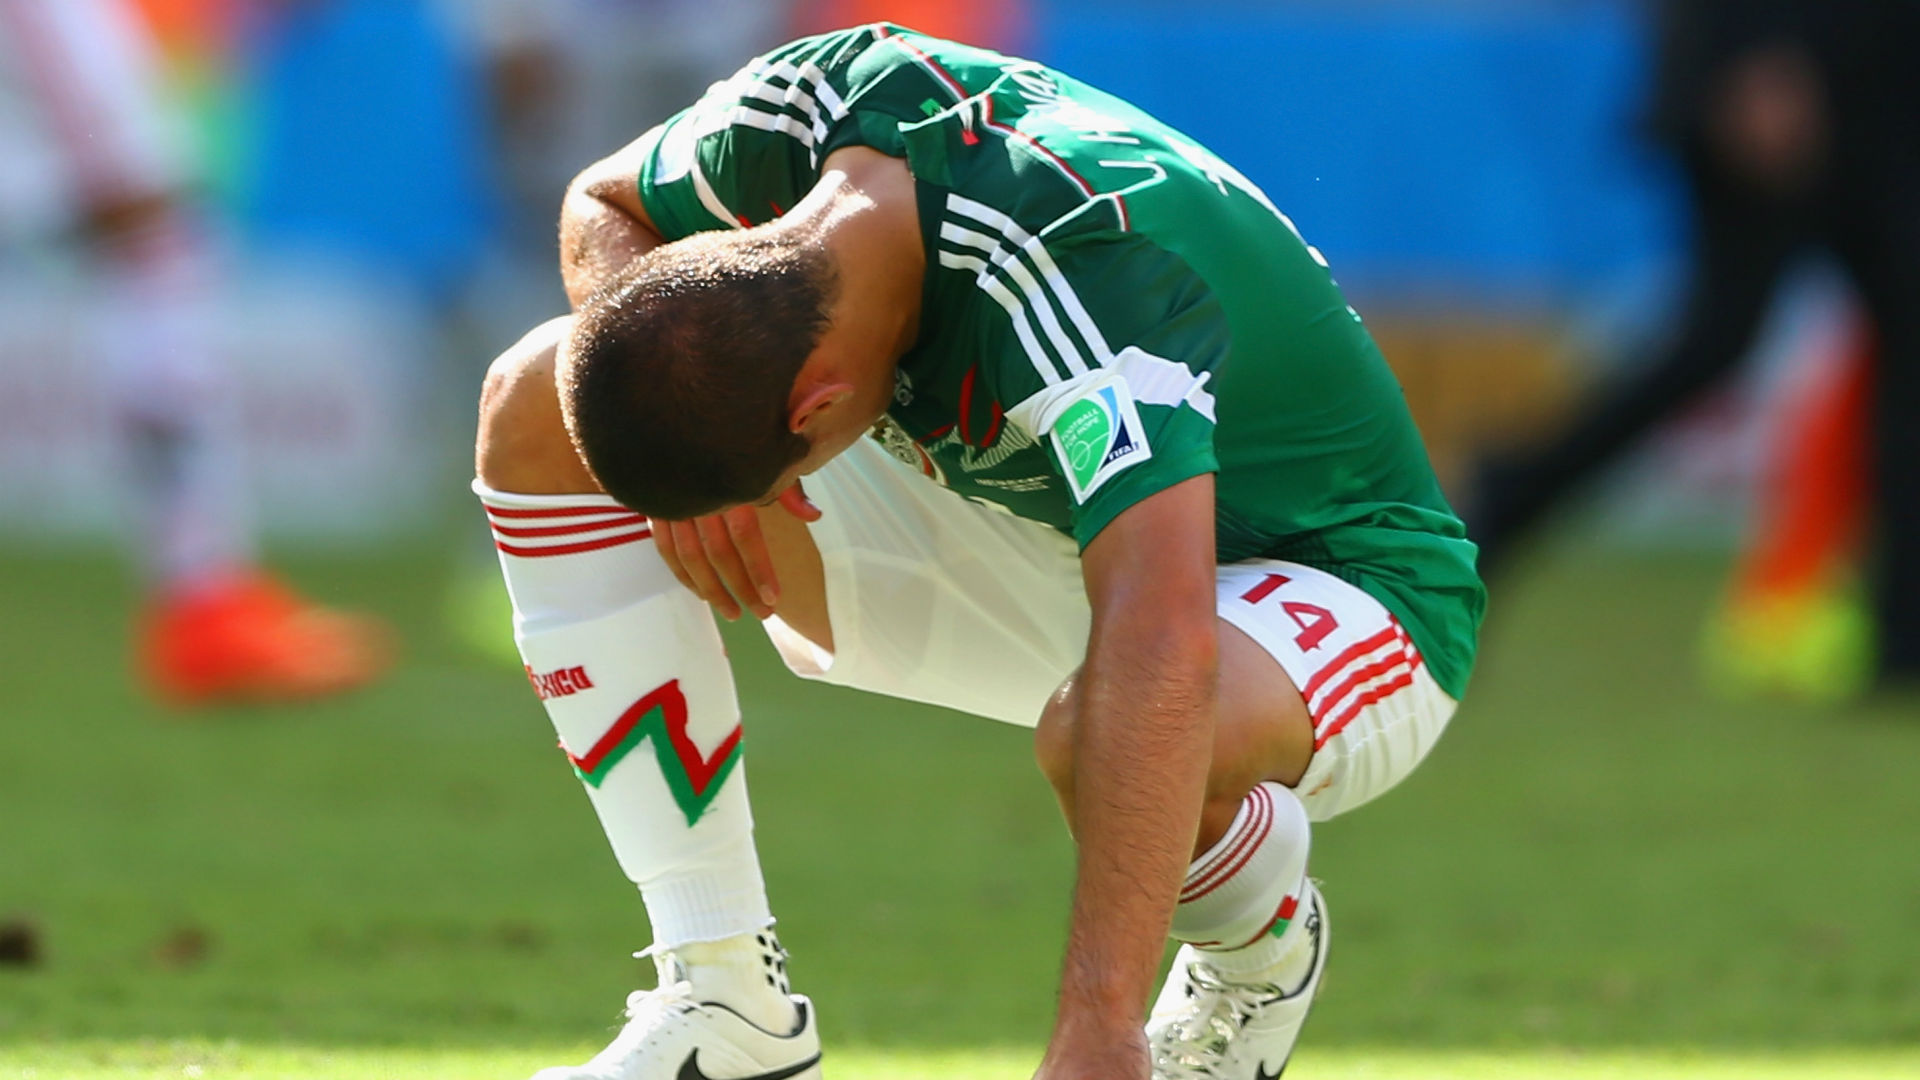 Mexico eliminated from 2018 World Cup after 2-0 loss to Brazil